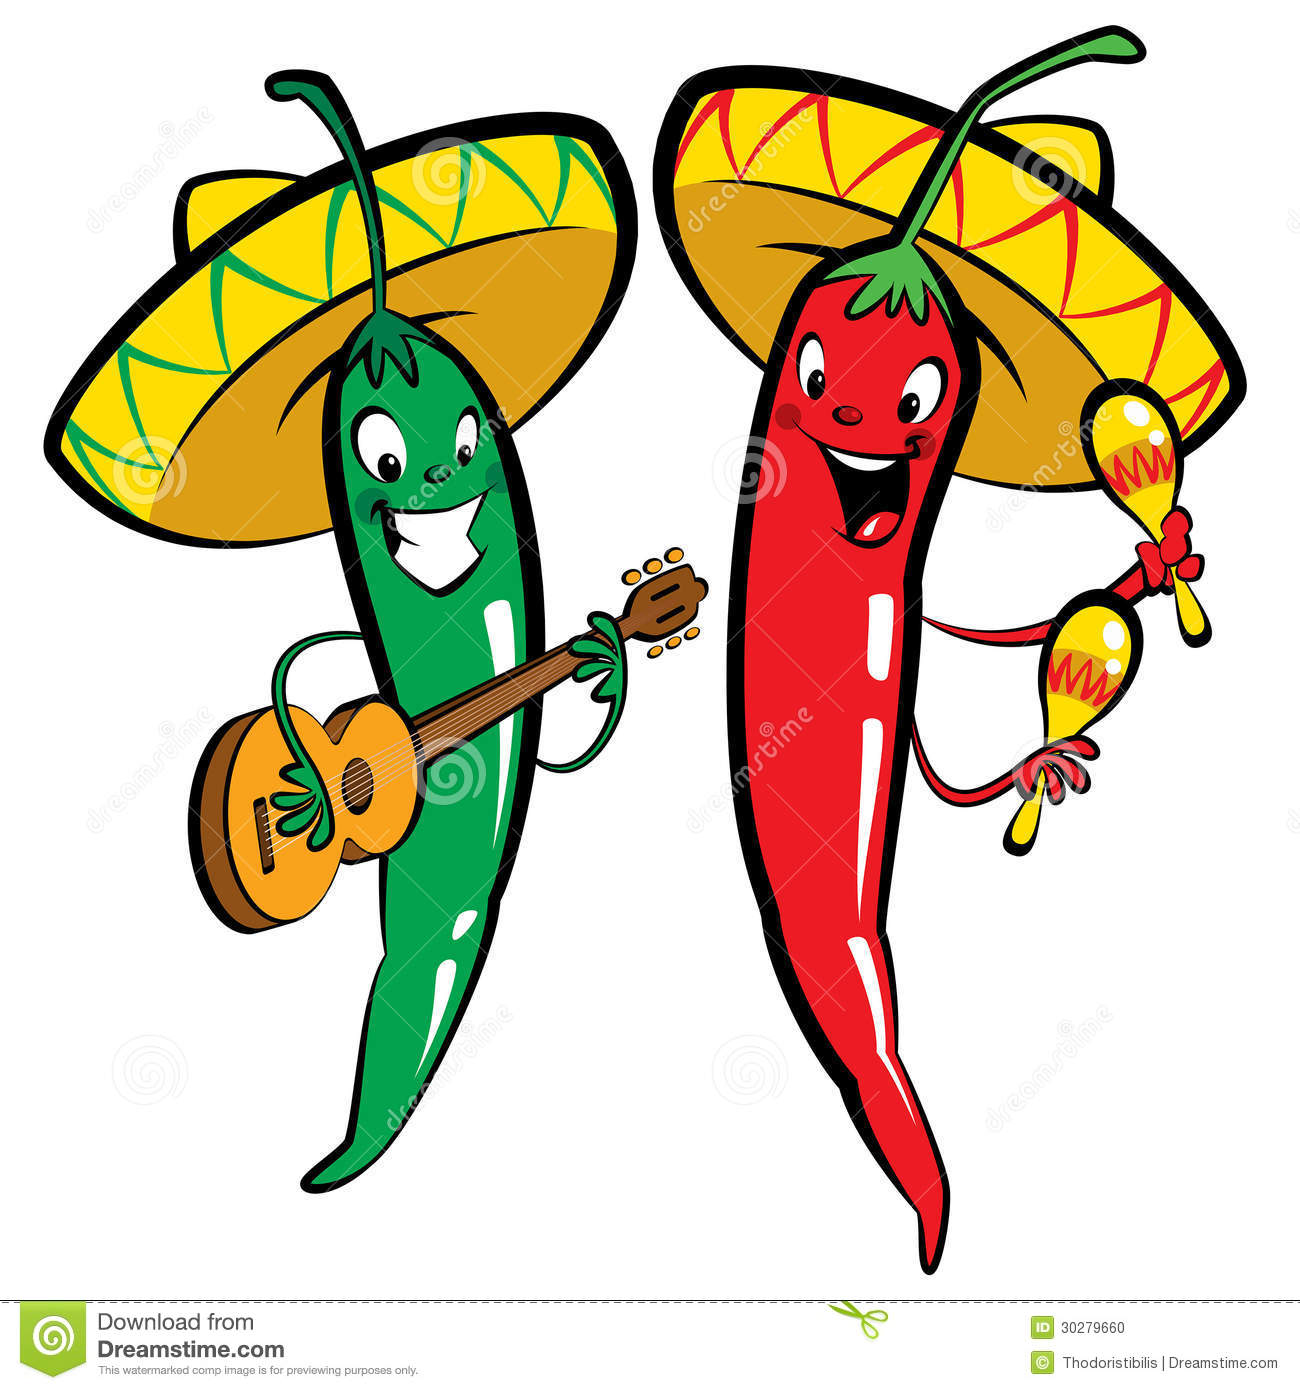 Clip Art Chili Pepper Clipart hot chili peppers clip art royalty free stock photos image 2968898 red and green character music group photo